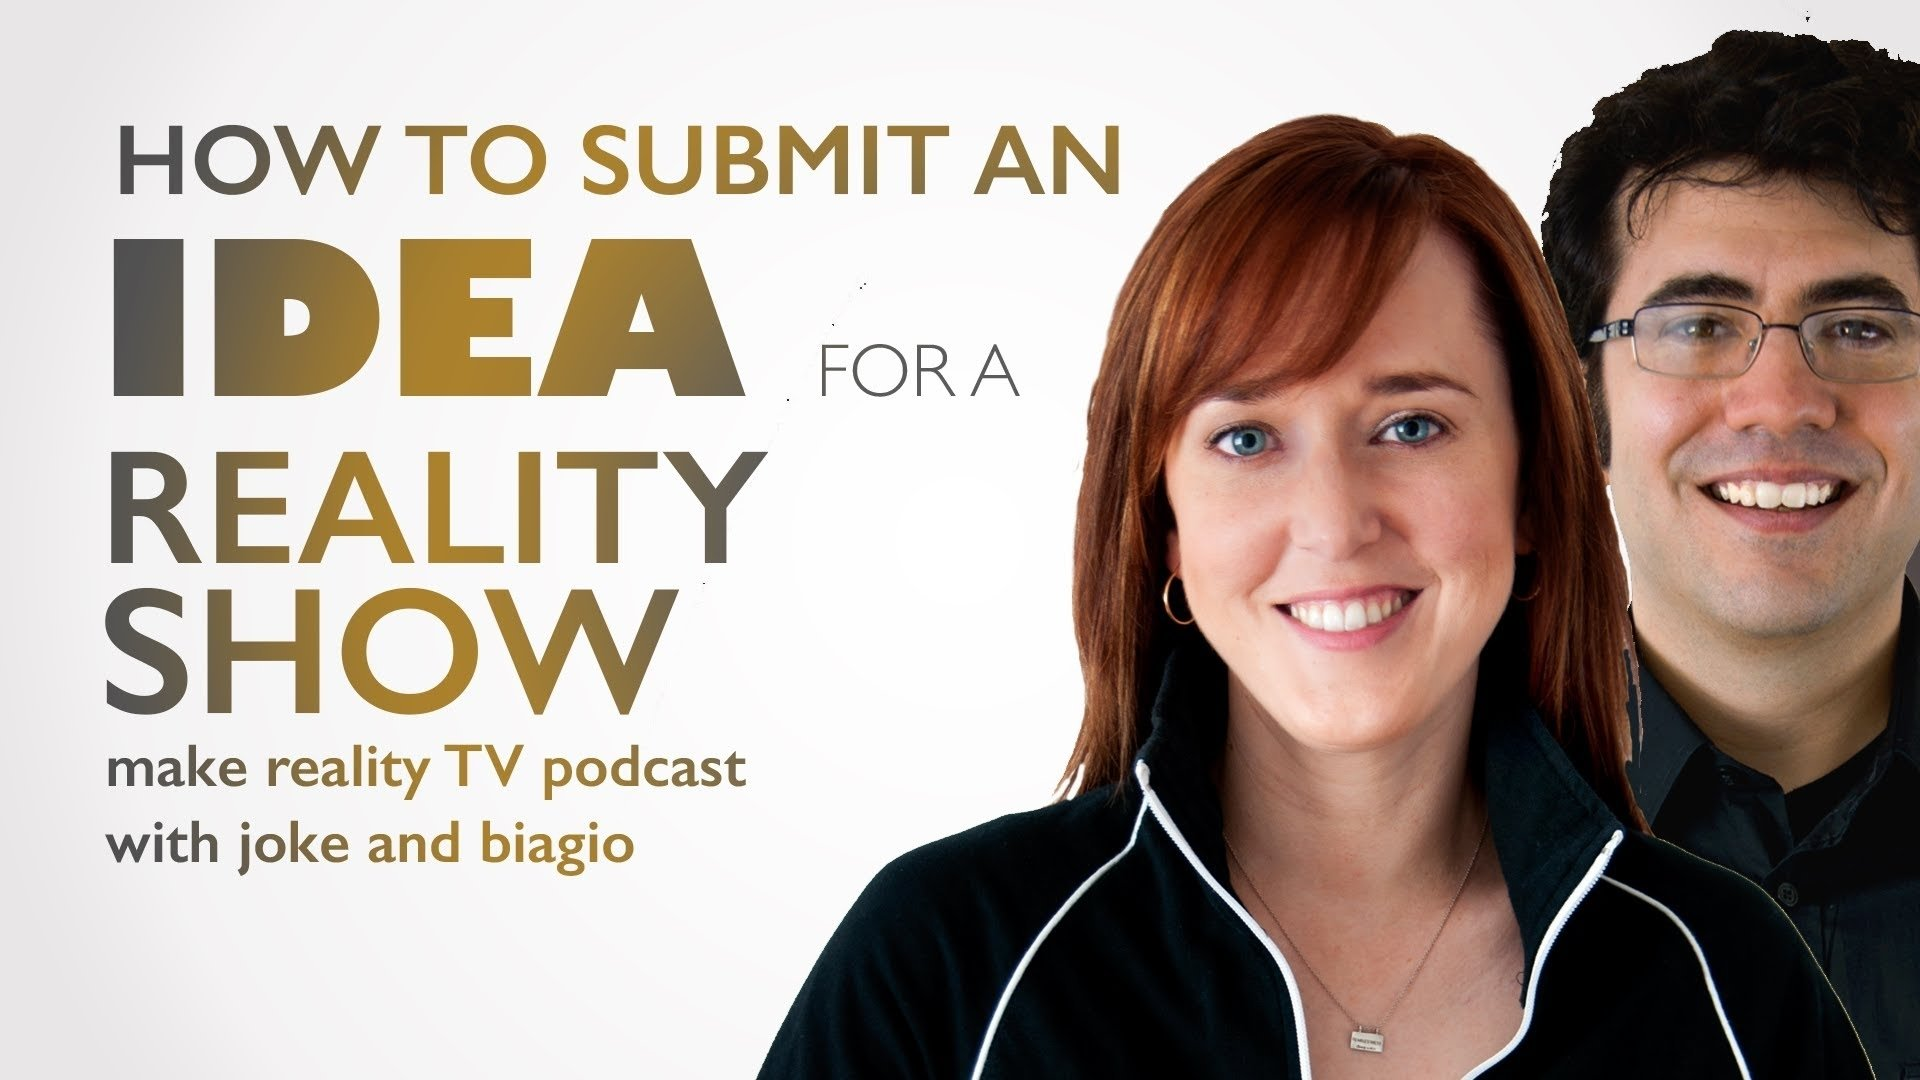 how to submit an idea for a reality tv show - youtube